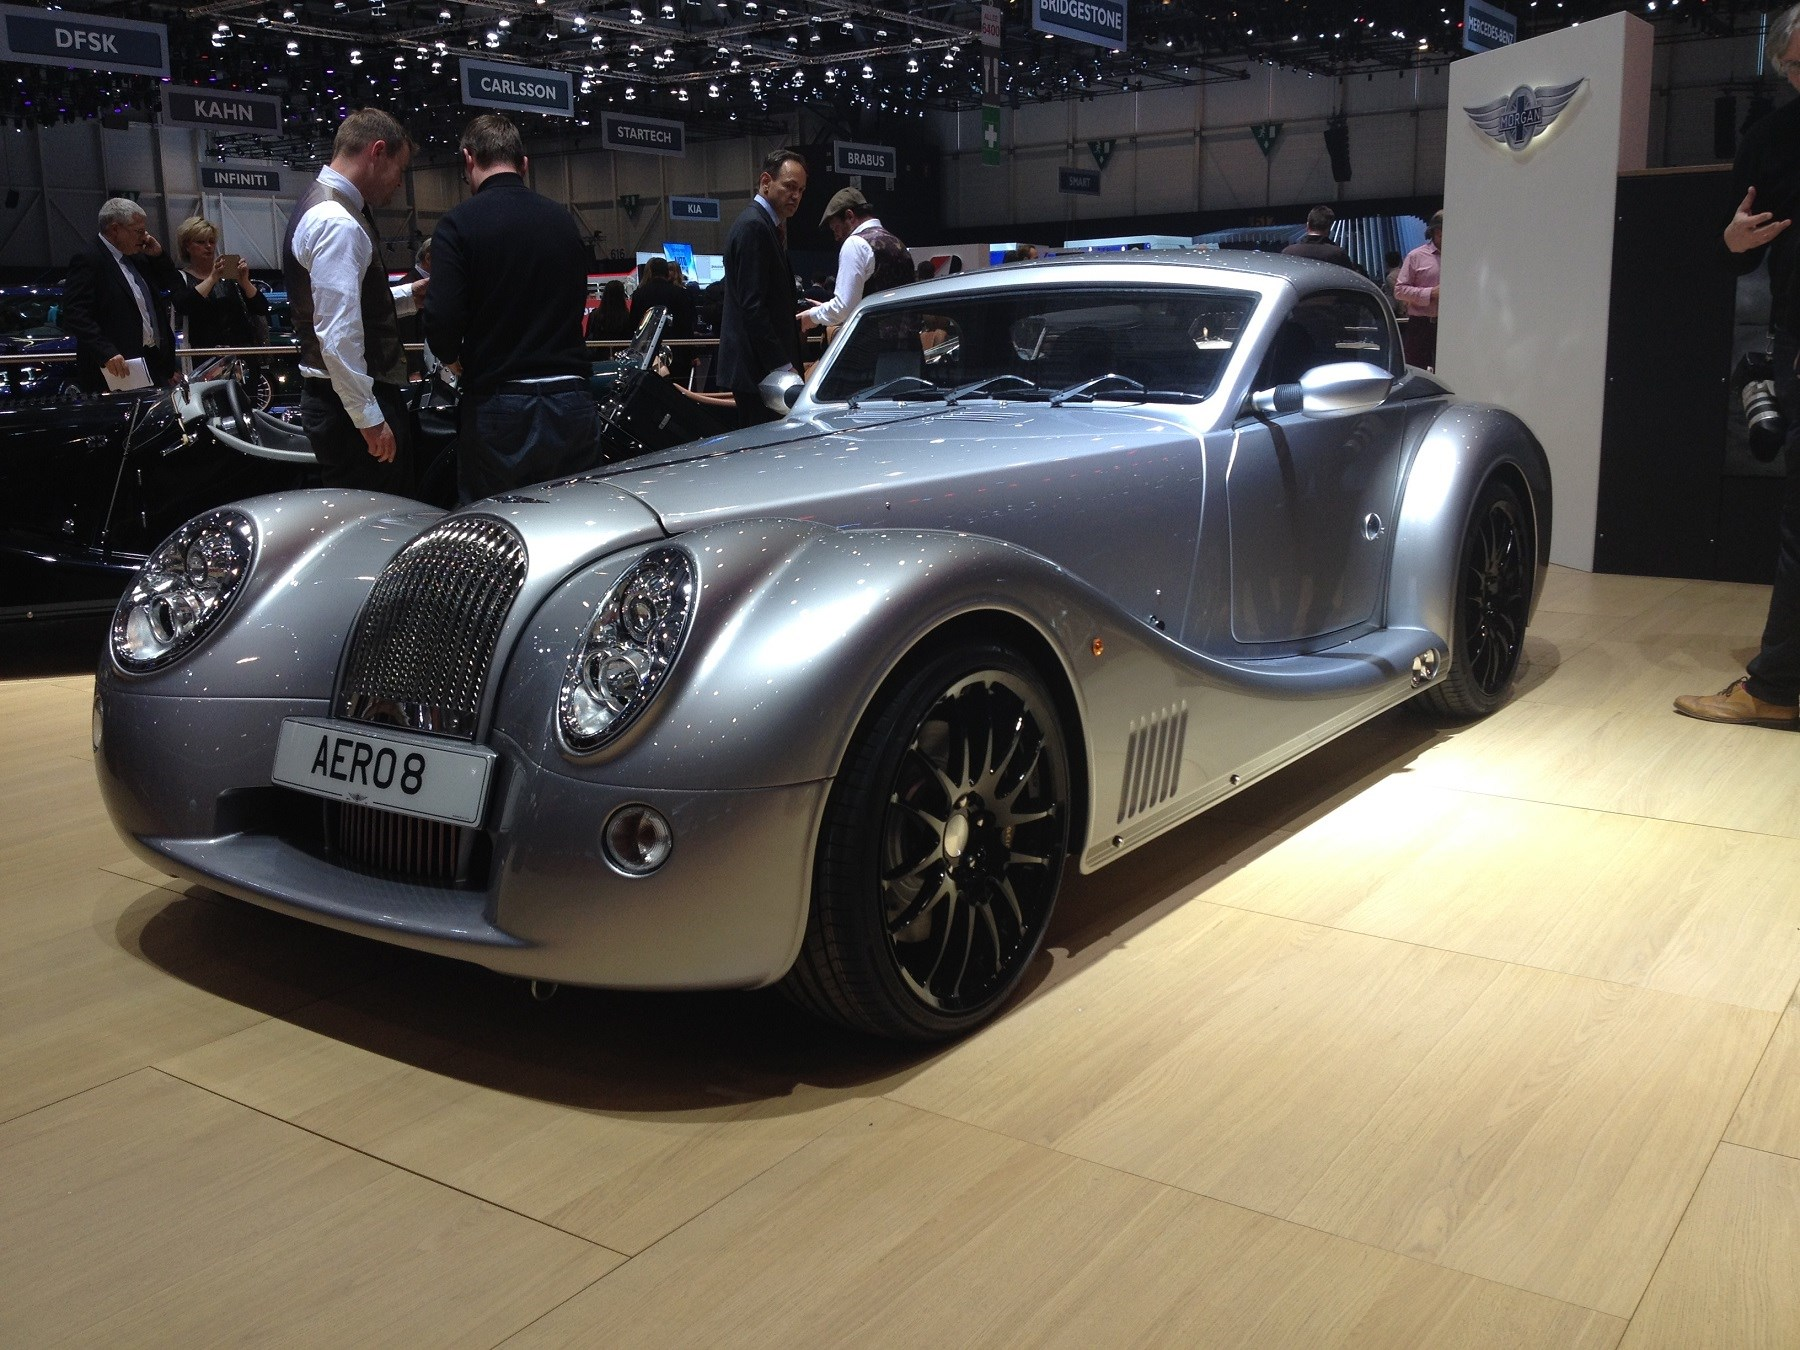 Morgan Aero 8 gets a reboot (and a price cut) by CAR Magazine